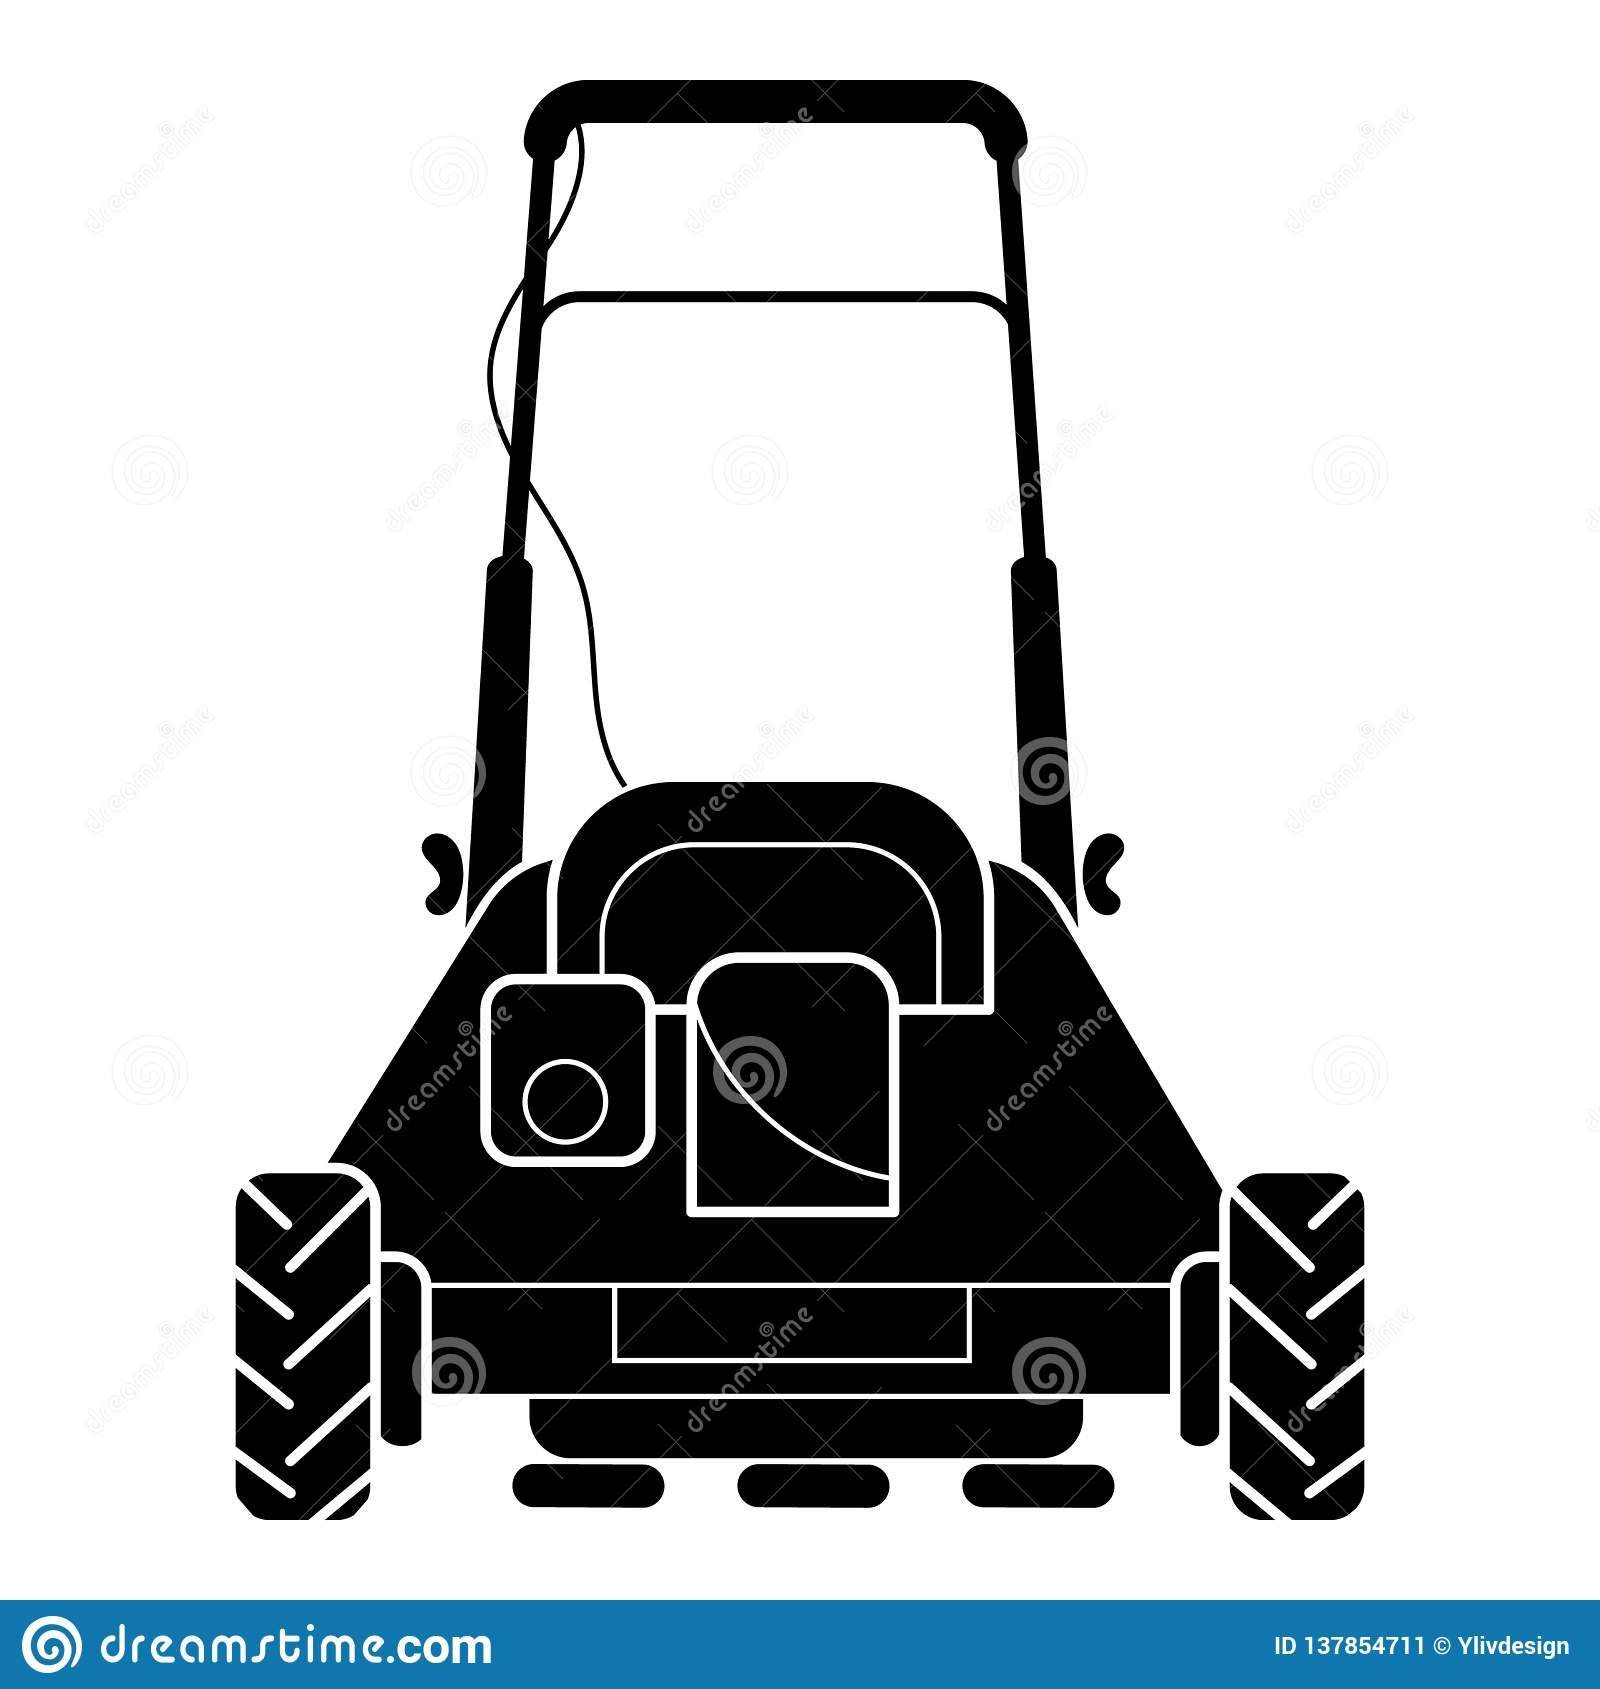 Back of lawn mower icon, simple style